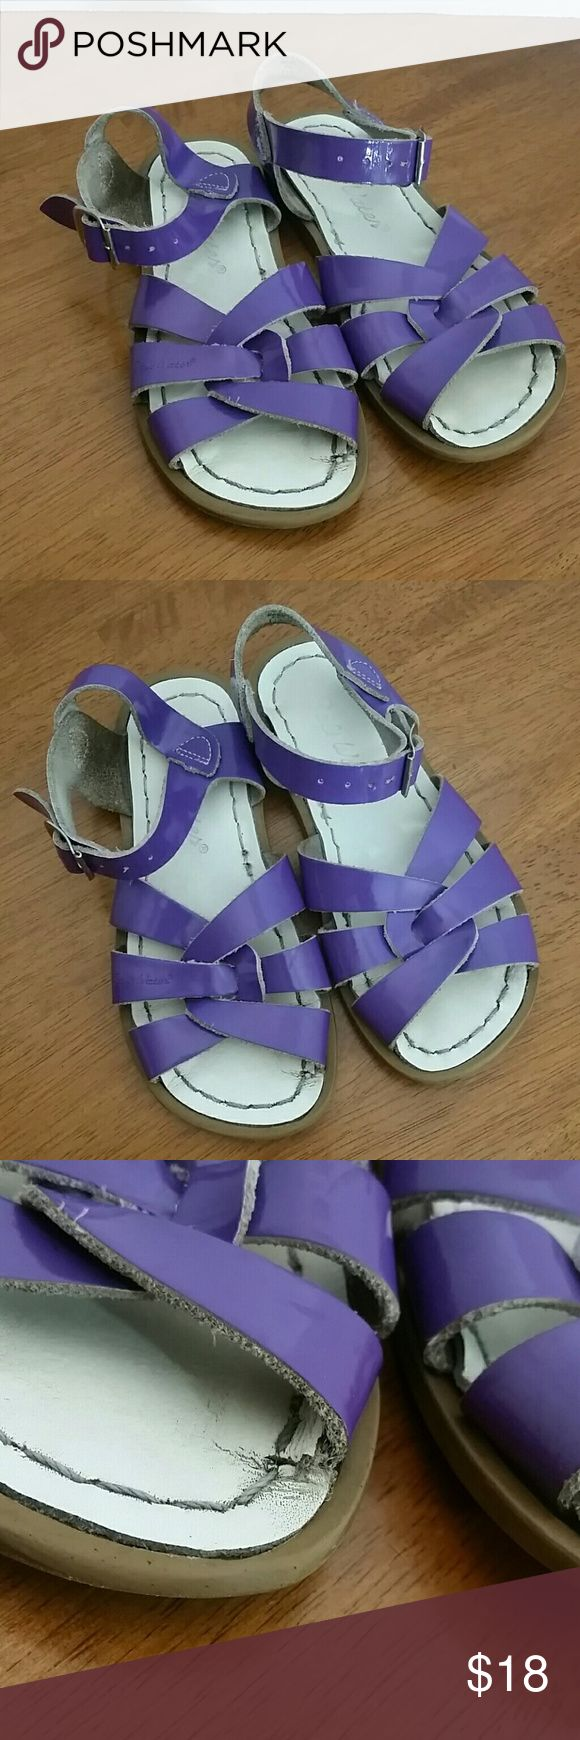 Salt water sandals Purple salt water sandals  Show signs of wear - see photos  No trades  No holds Salt Water Sandals by Hoy Shoes Sandals & Flip Flops